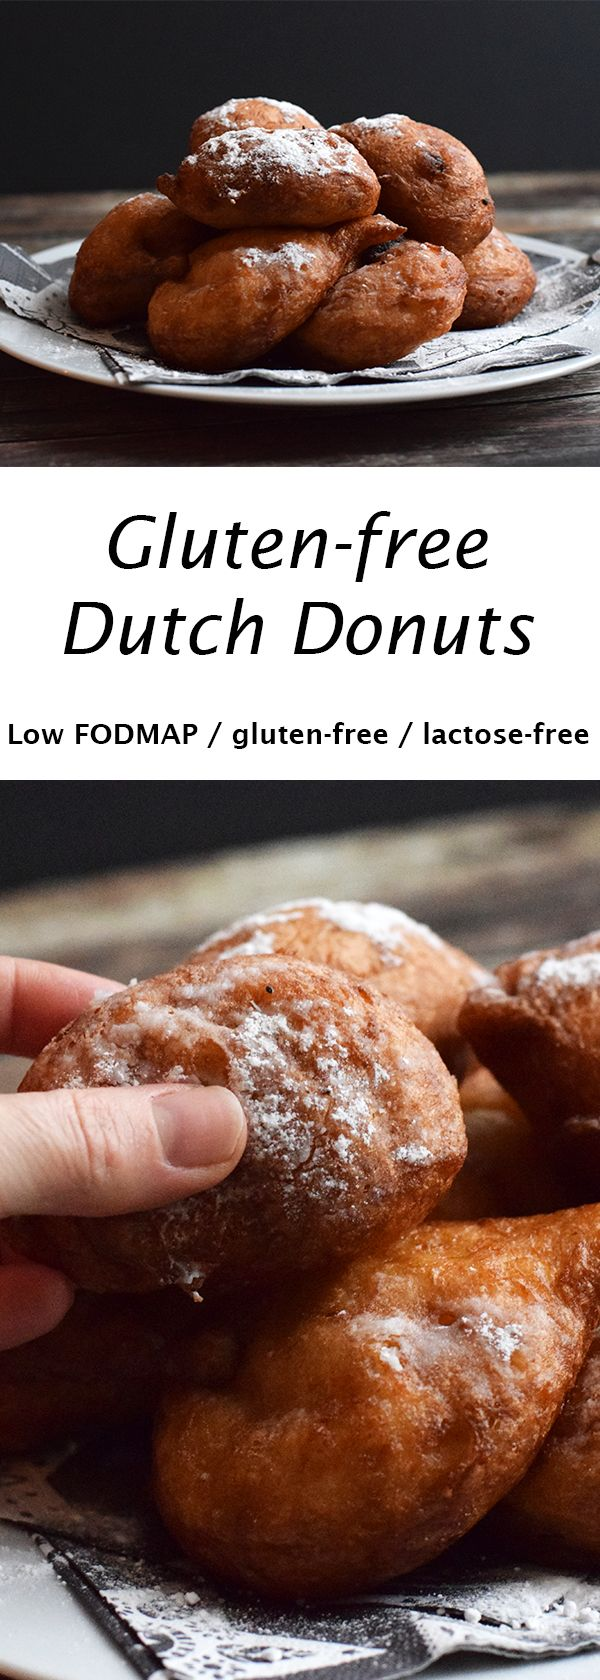 Delicious Dutch donuts. Low FODMAP, gluten-free and lactose-free.